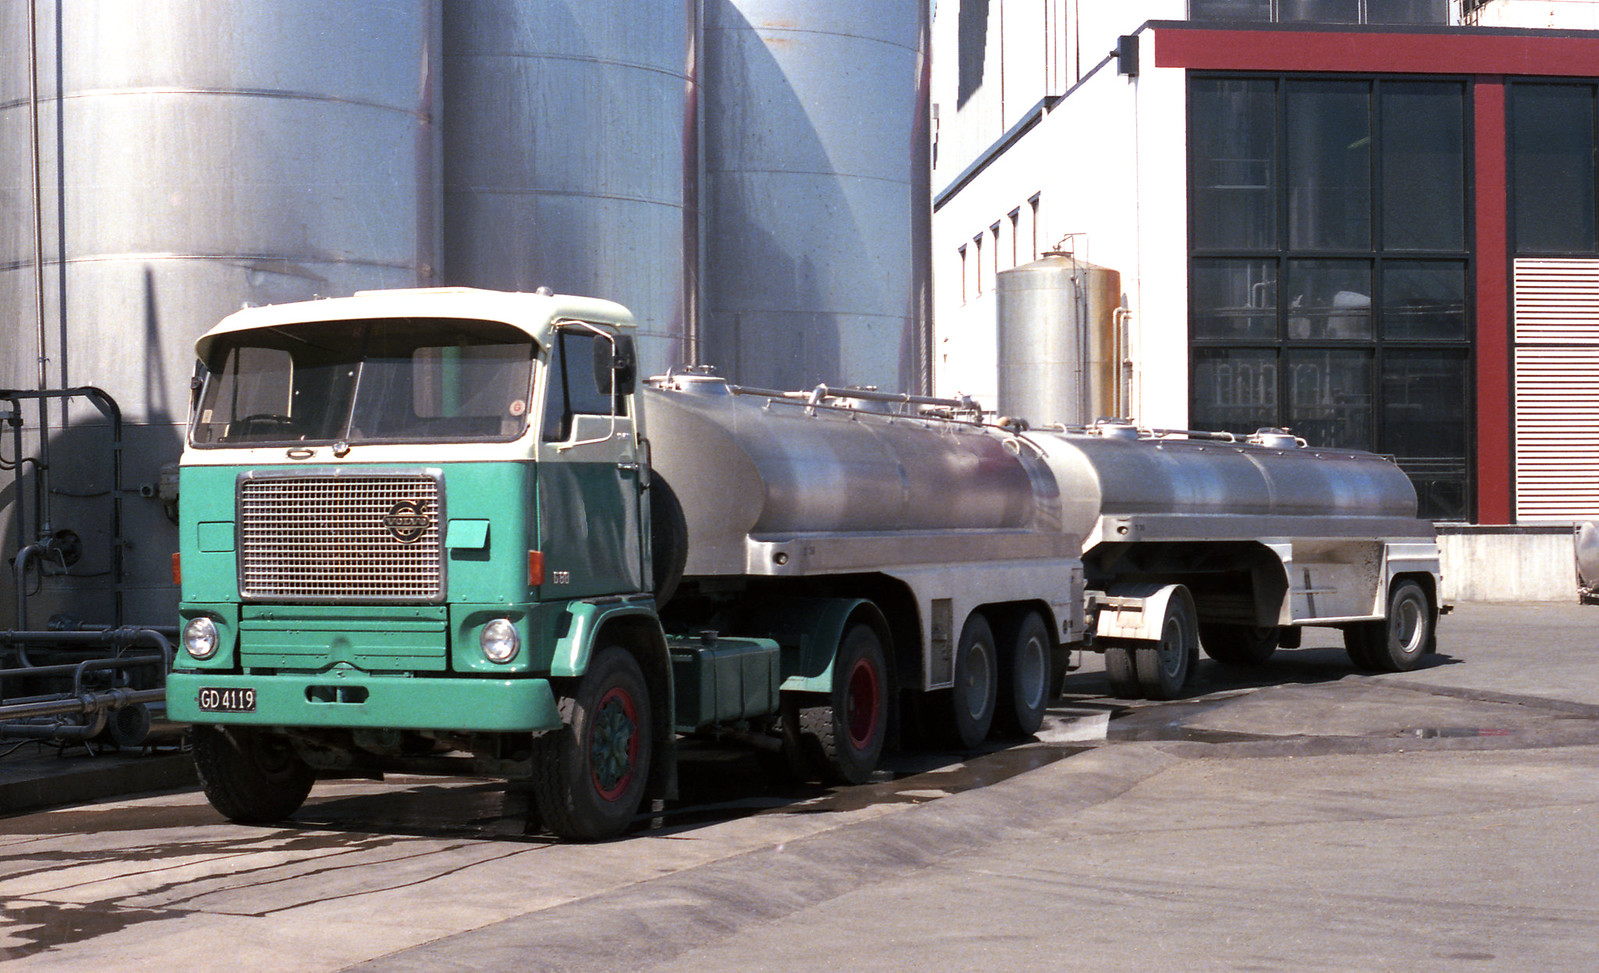 New Zealand Trucks In The 1980's   Flickr